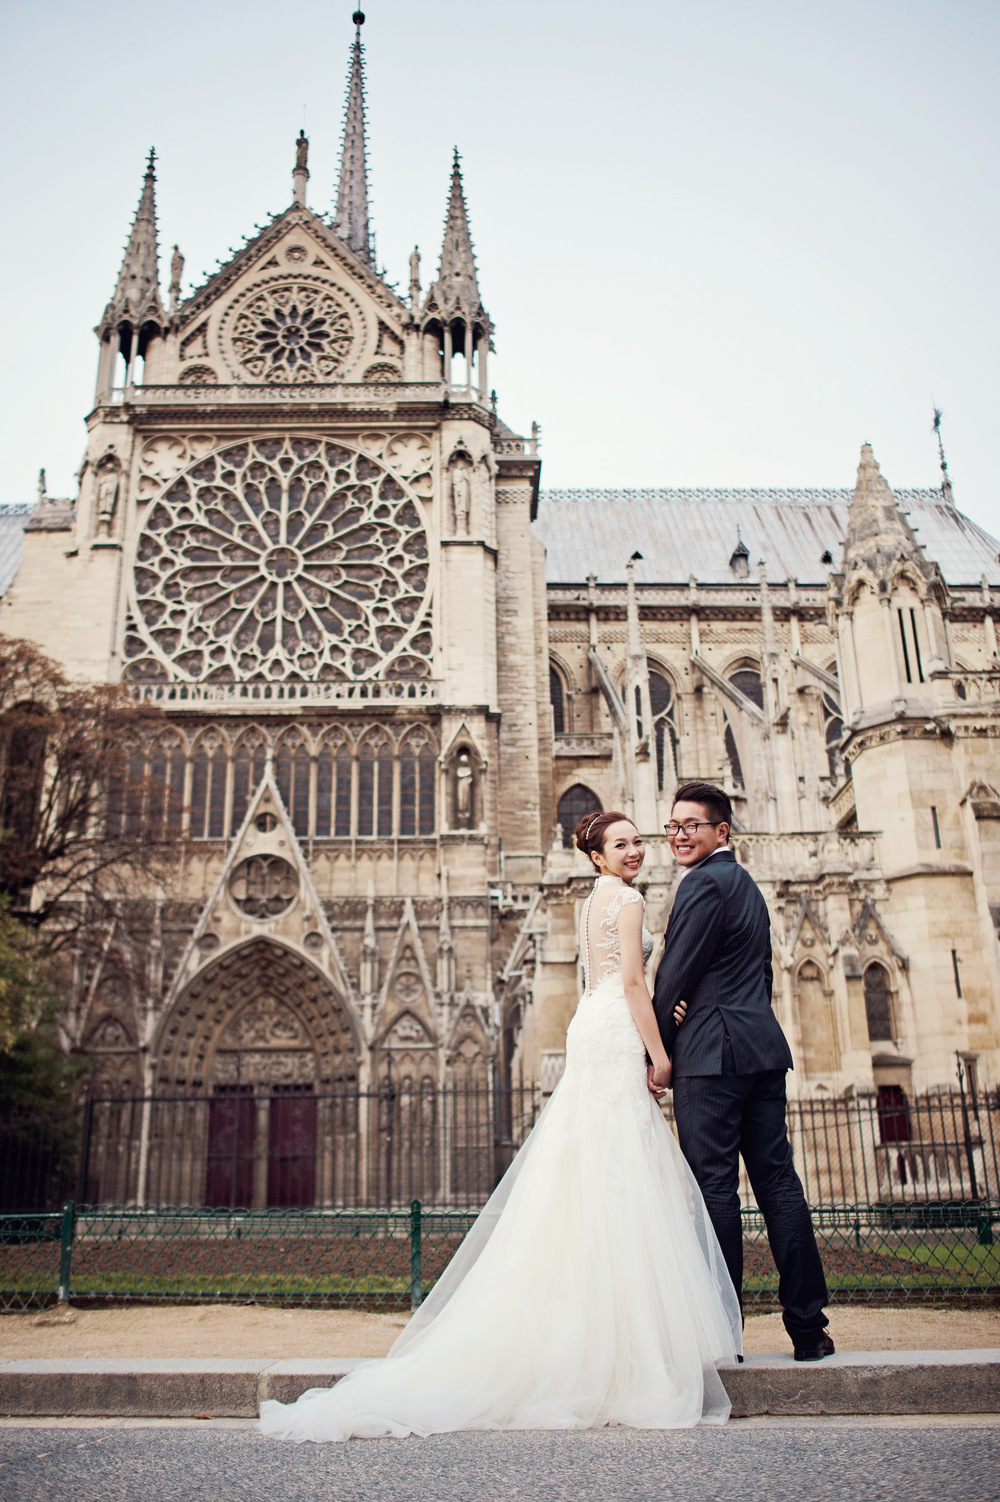 Chris_Hui_Paris_Prewedding_Photography209.jpg